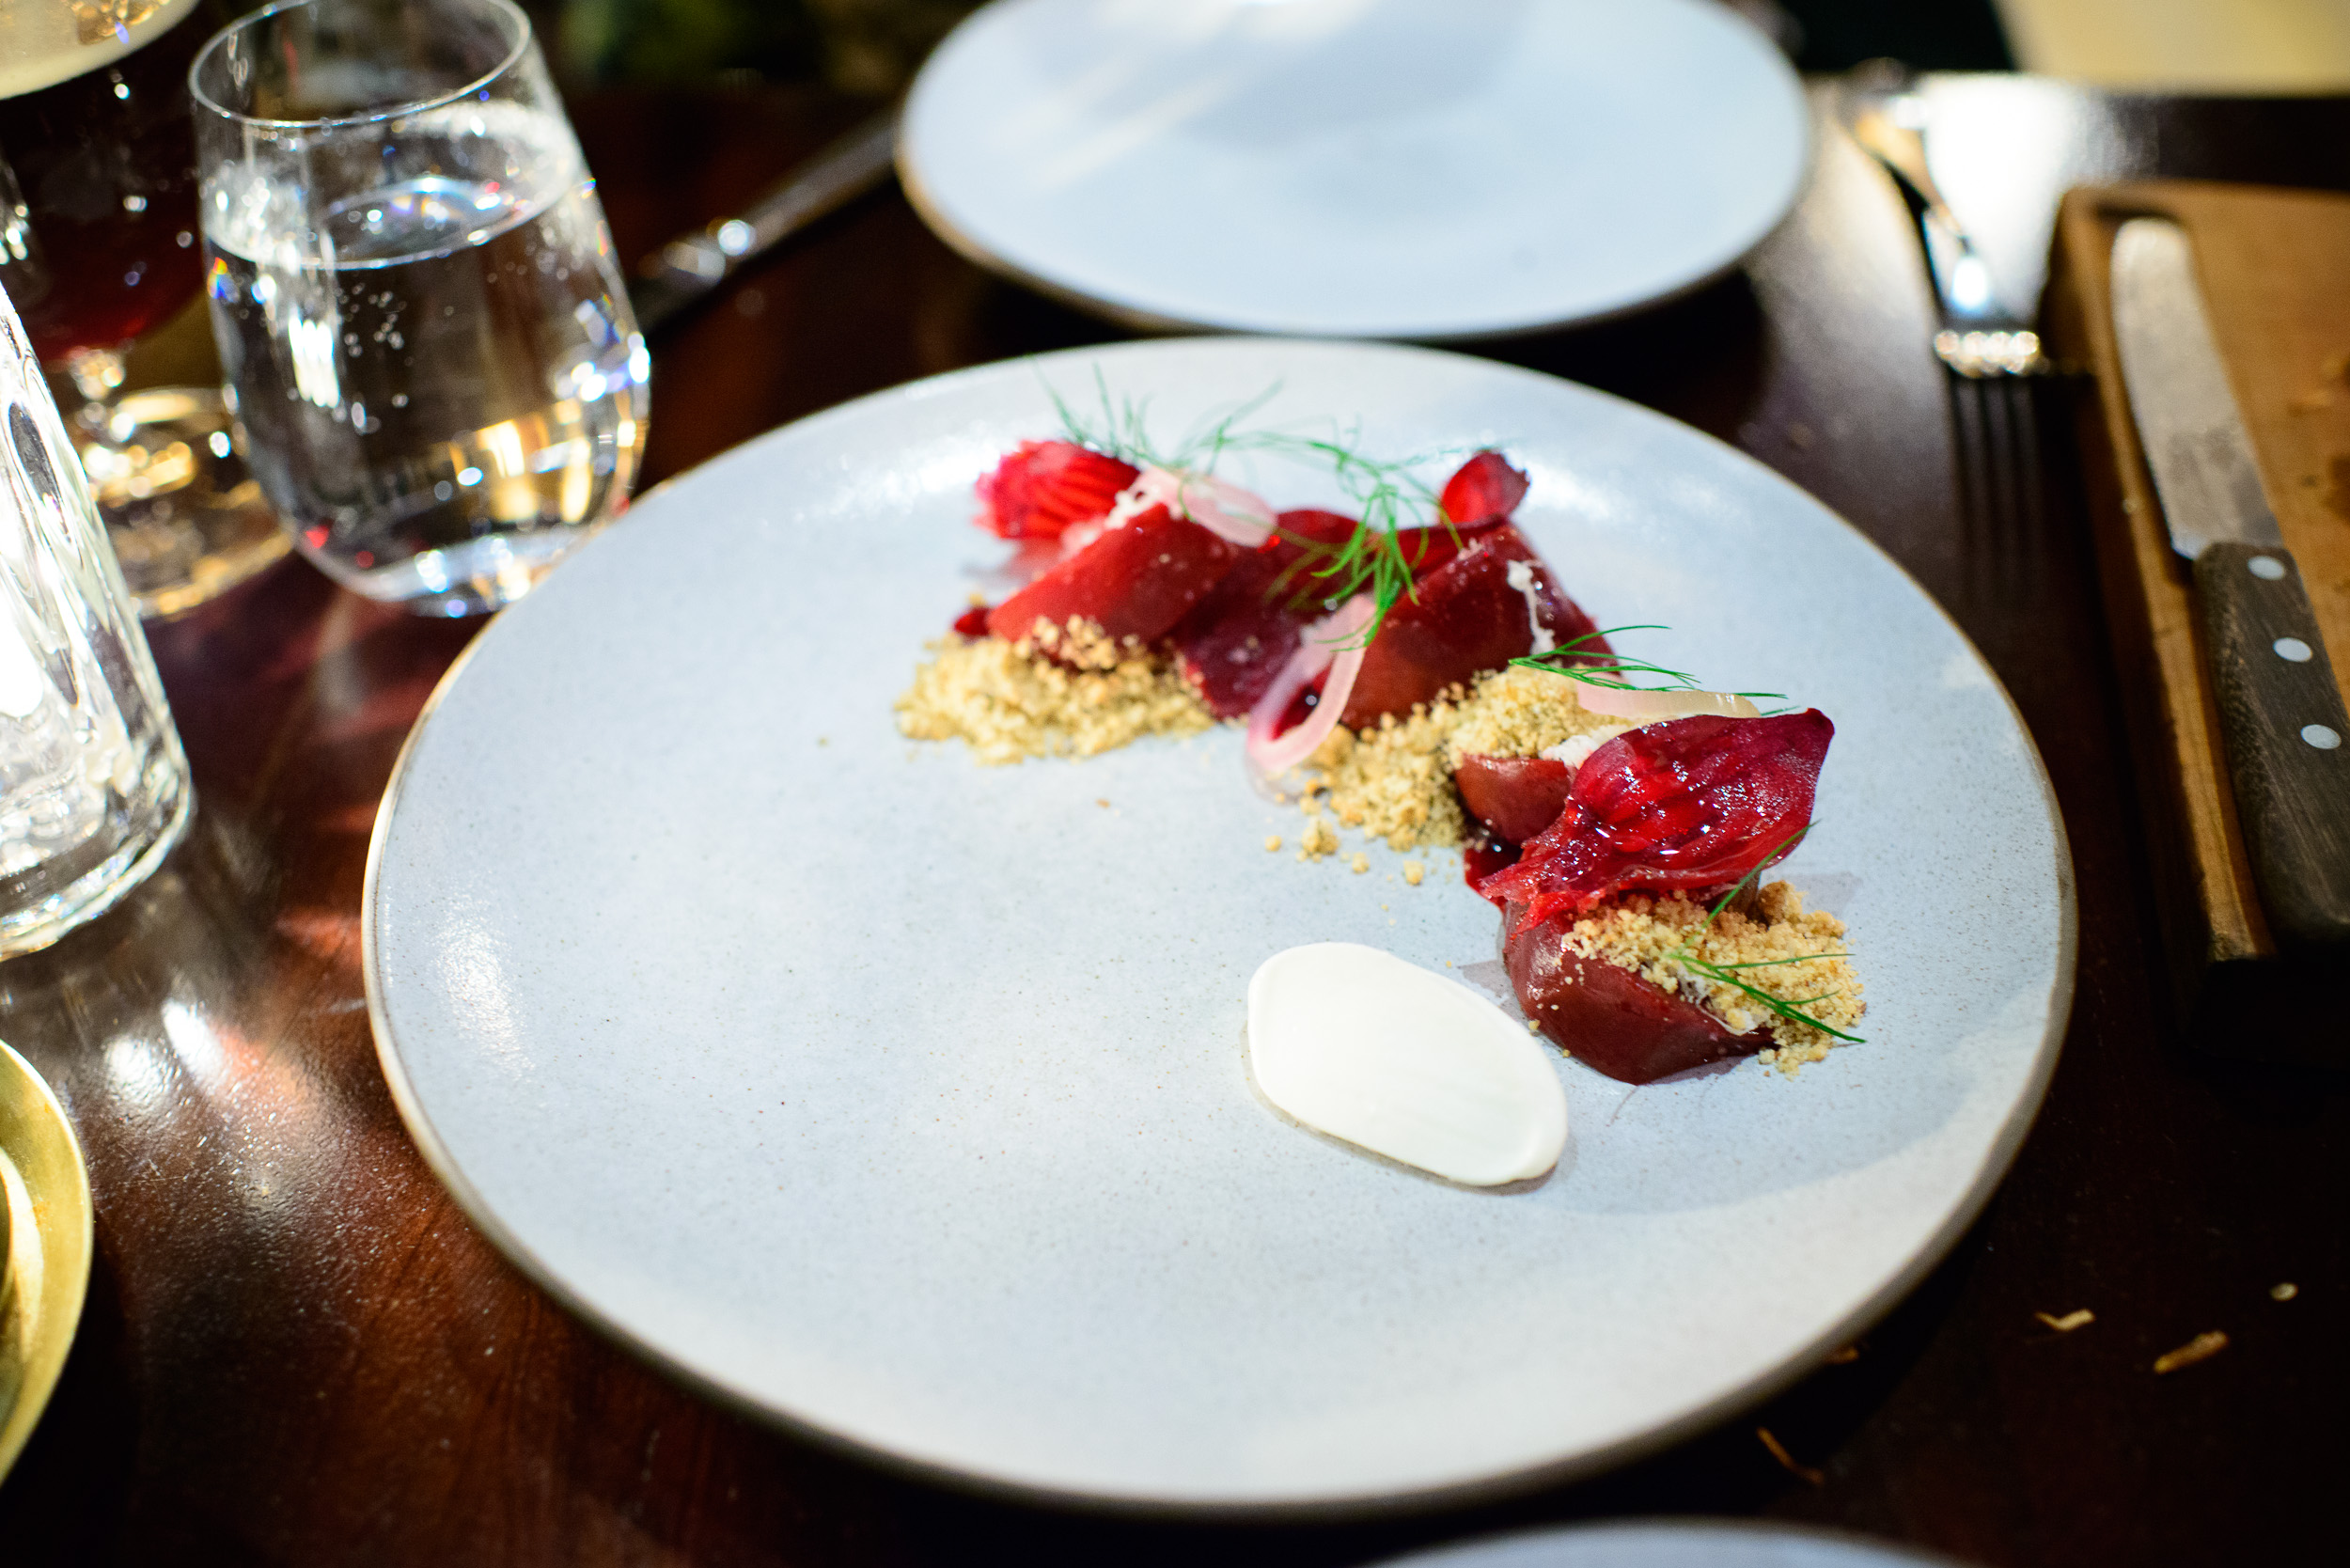 Beet: roasted with rye, agretti and smoked crème fraîche ($17)